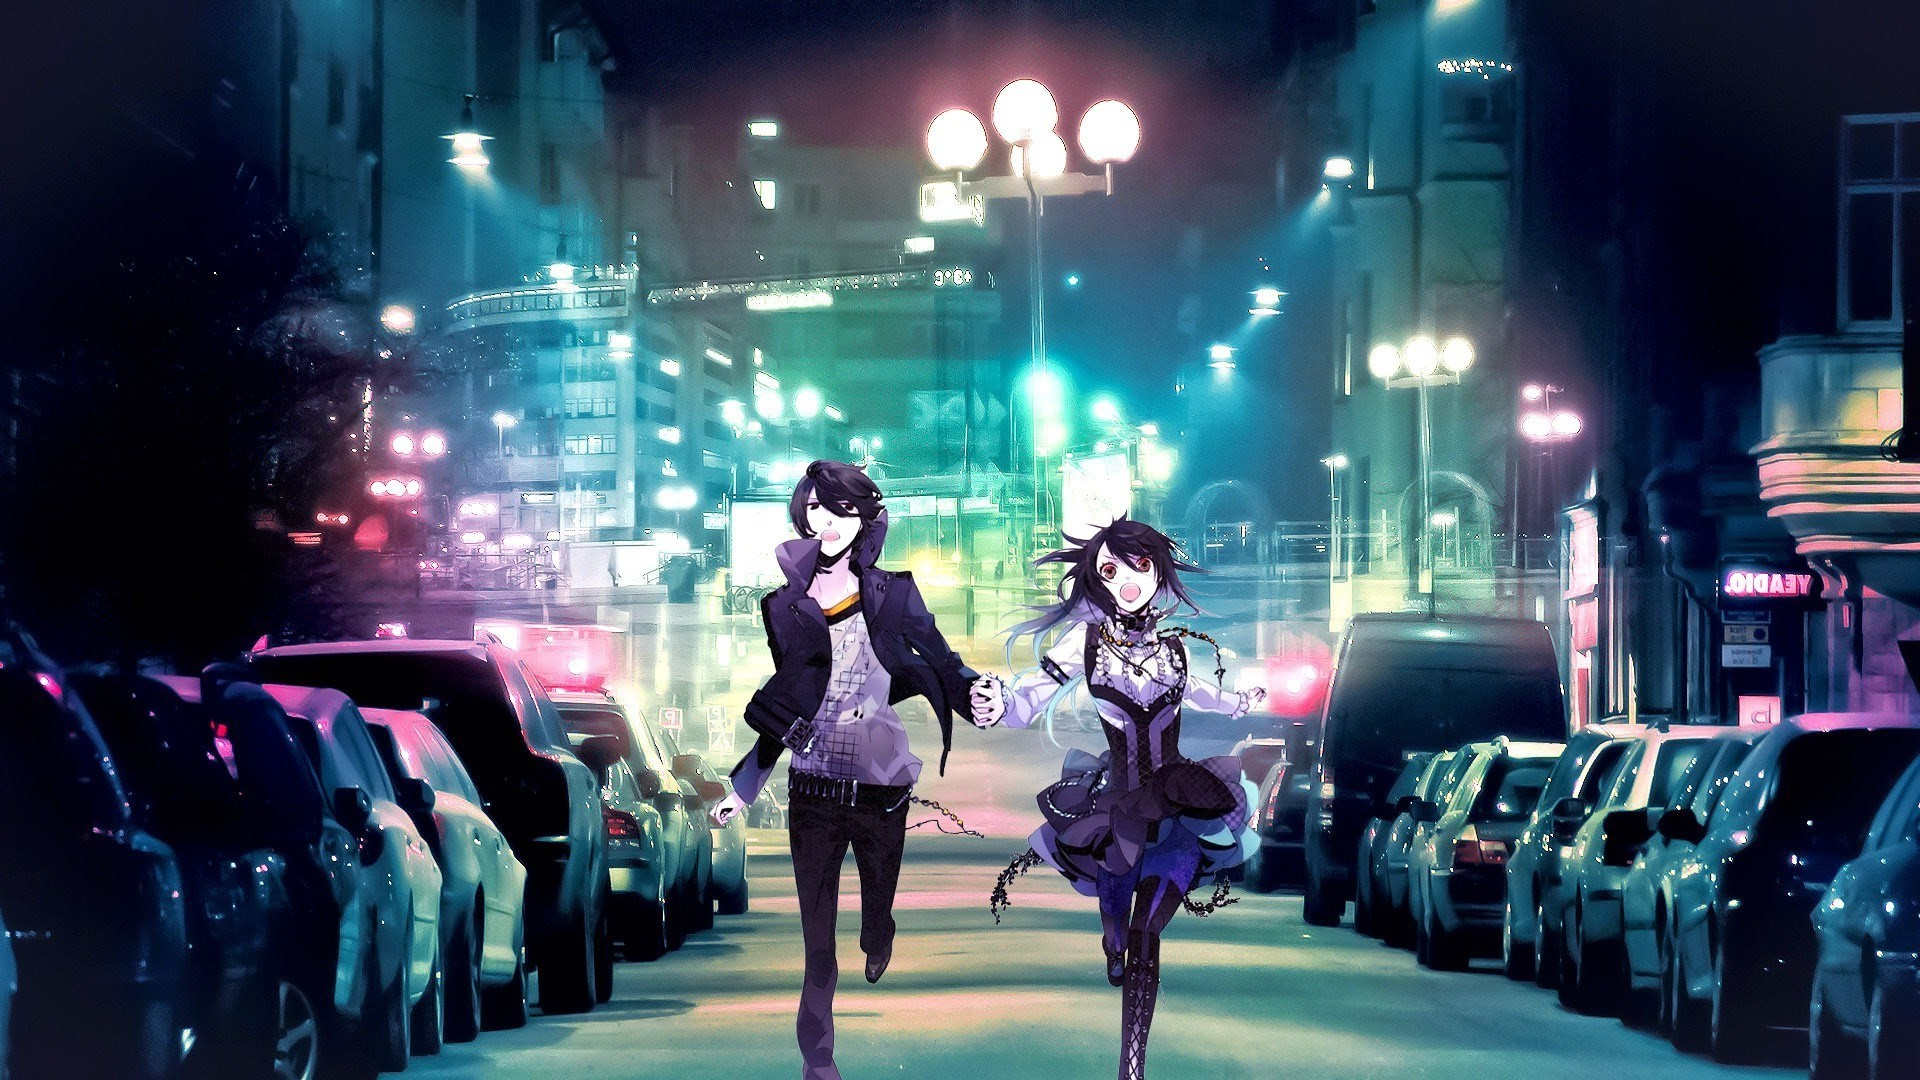 Res: 1920x1080, Cute Anime Couple Photos Cute Anime Couple Wallpaper Download Free